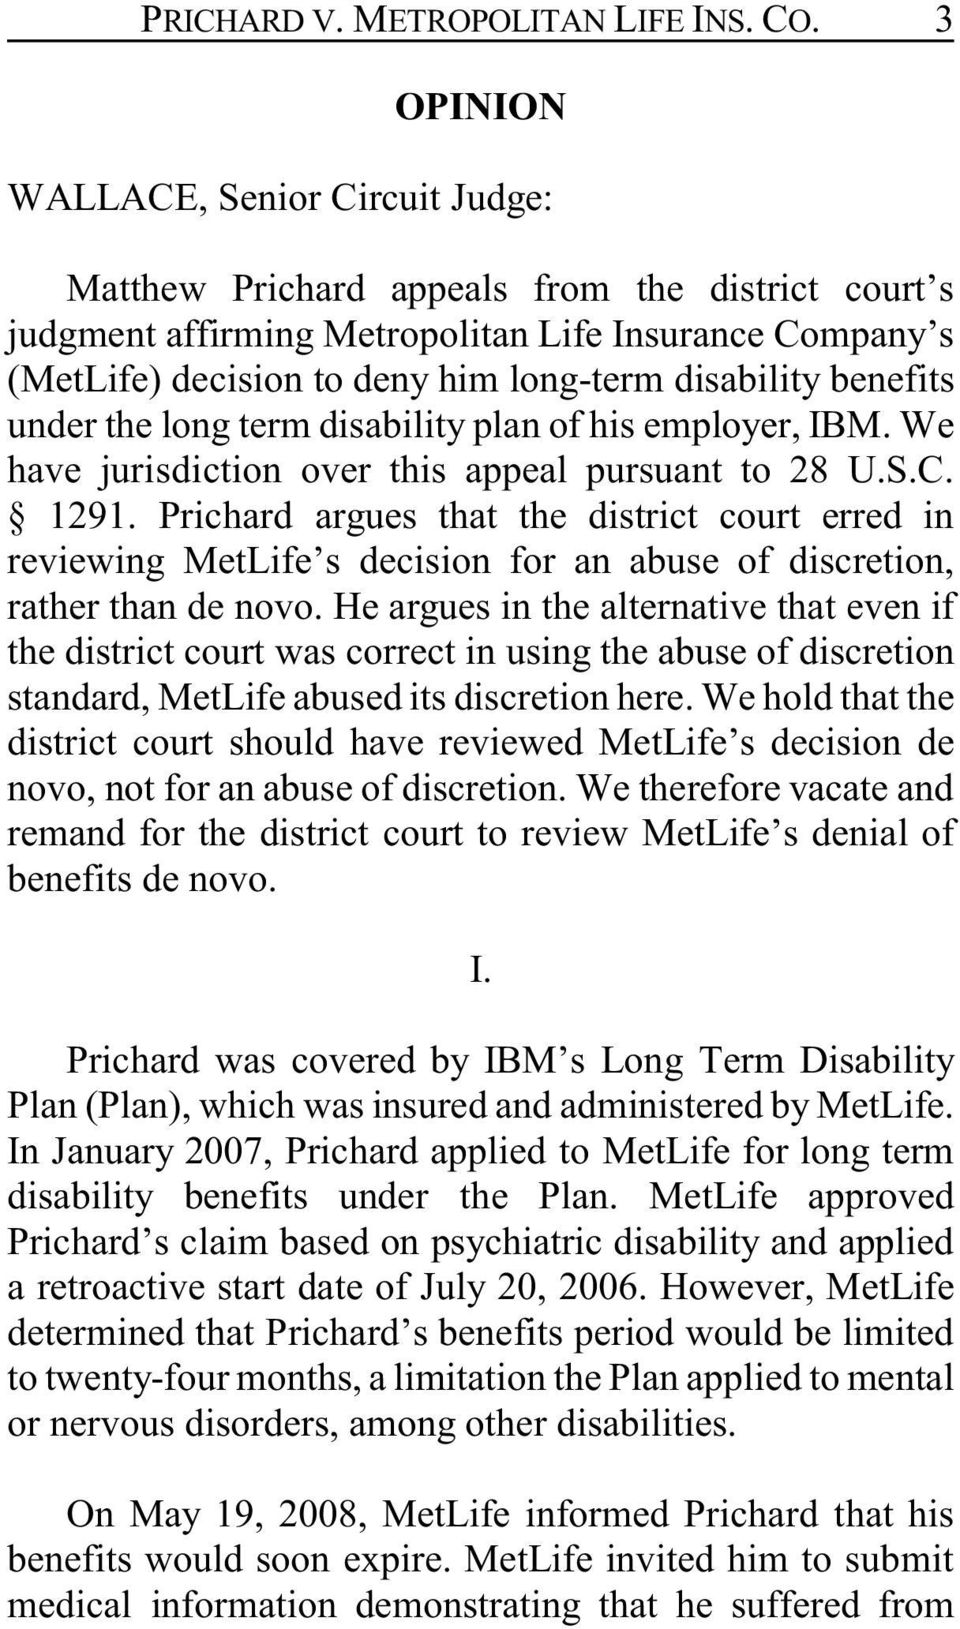 disability benefits under the long term disability plan of his employer, IBM. We have jurisdiction over this appeal pursuant to 28 U.S.C. 1291.